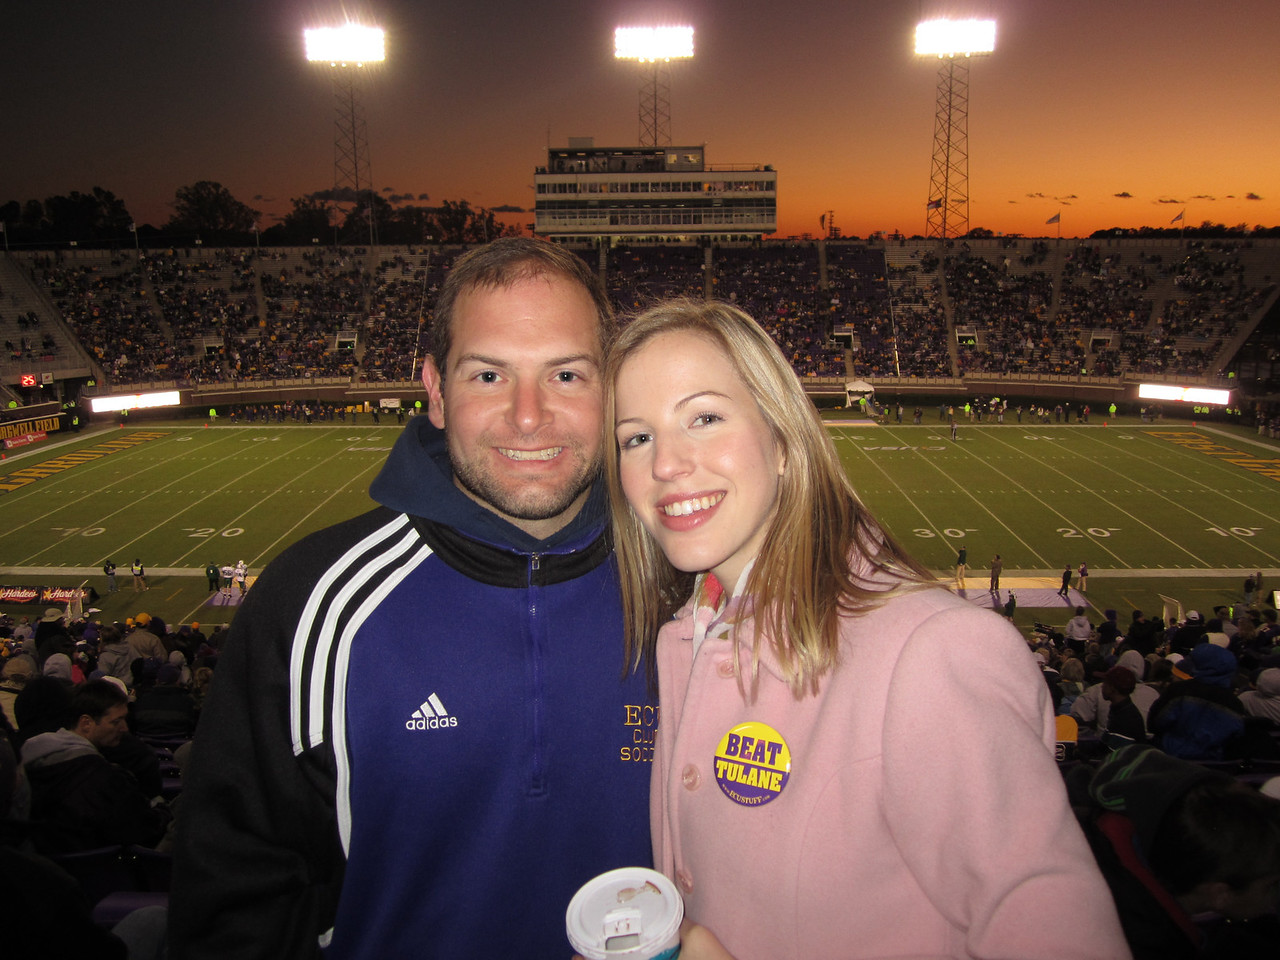 10/29/2011 ECU vs. Tulane (Homecoming) - Jon Deutsch, Erin Acree